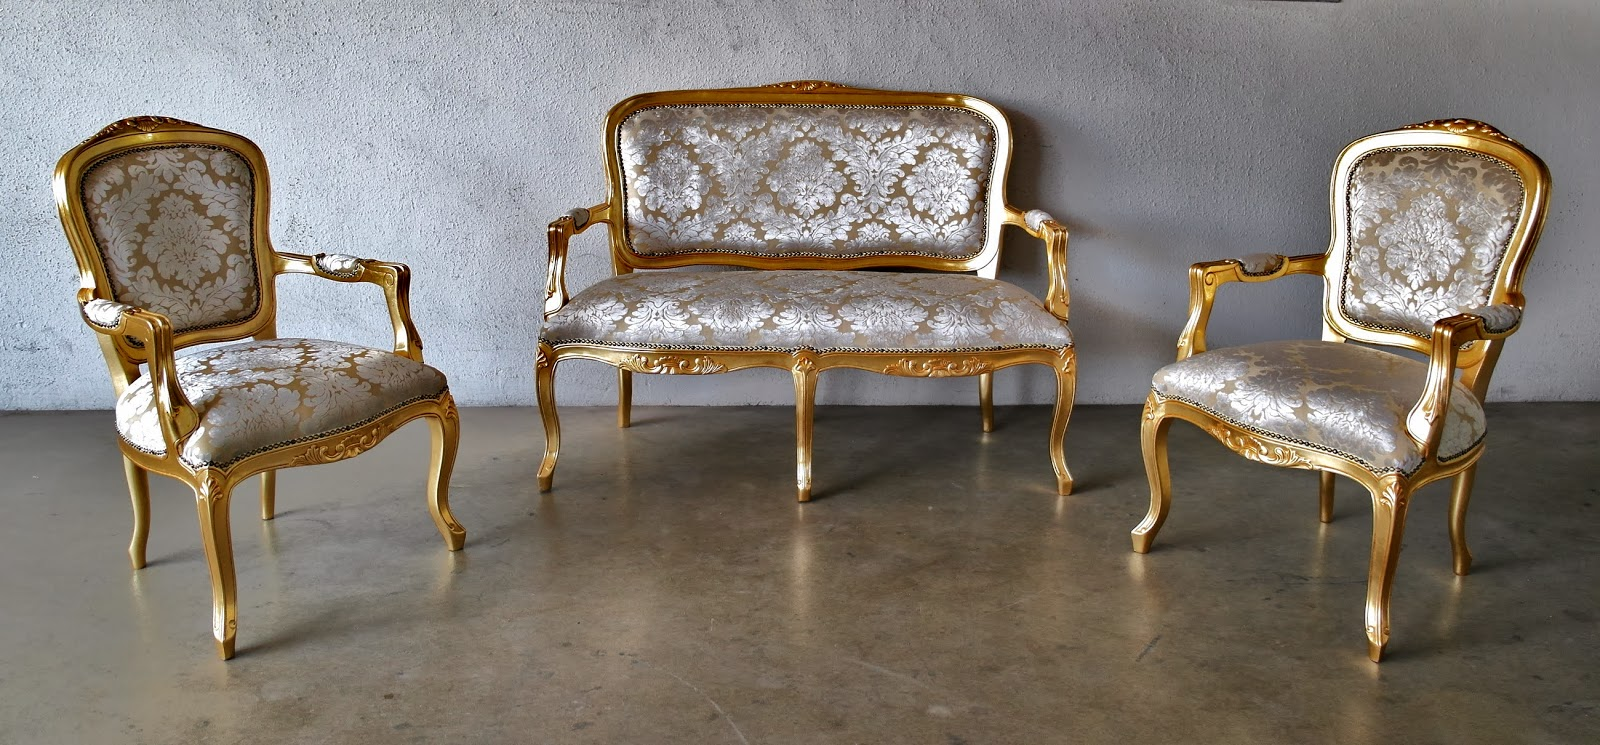 PASSIONATELY FRENCH FURNITURE - CLASSIC AND MODERN